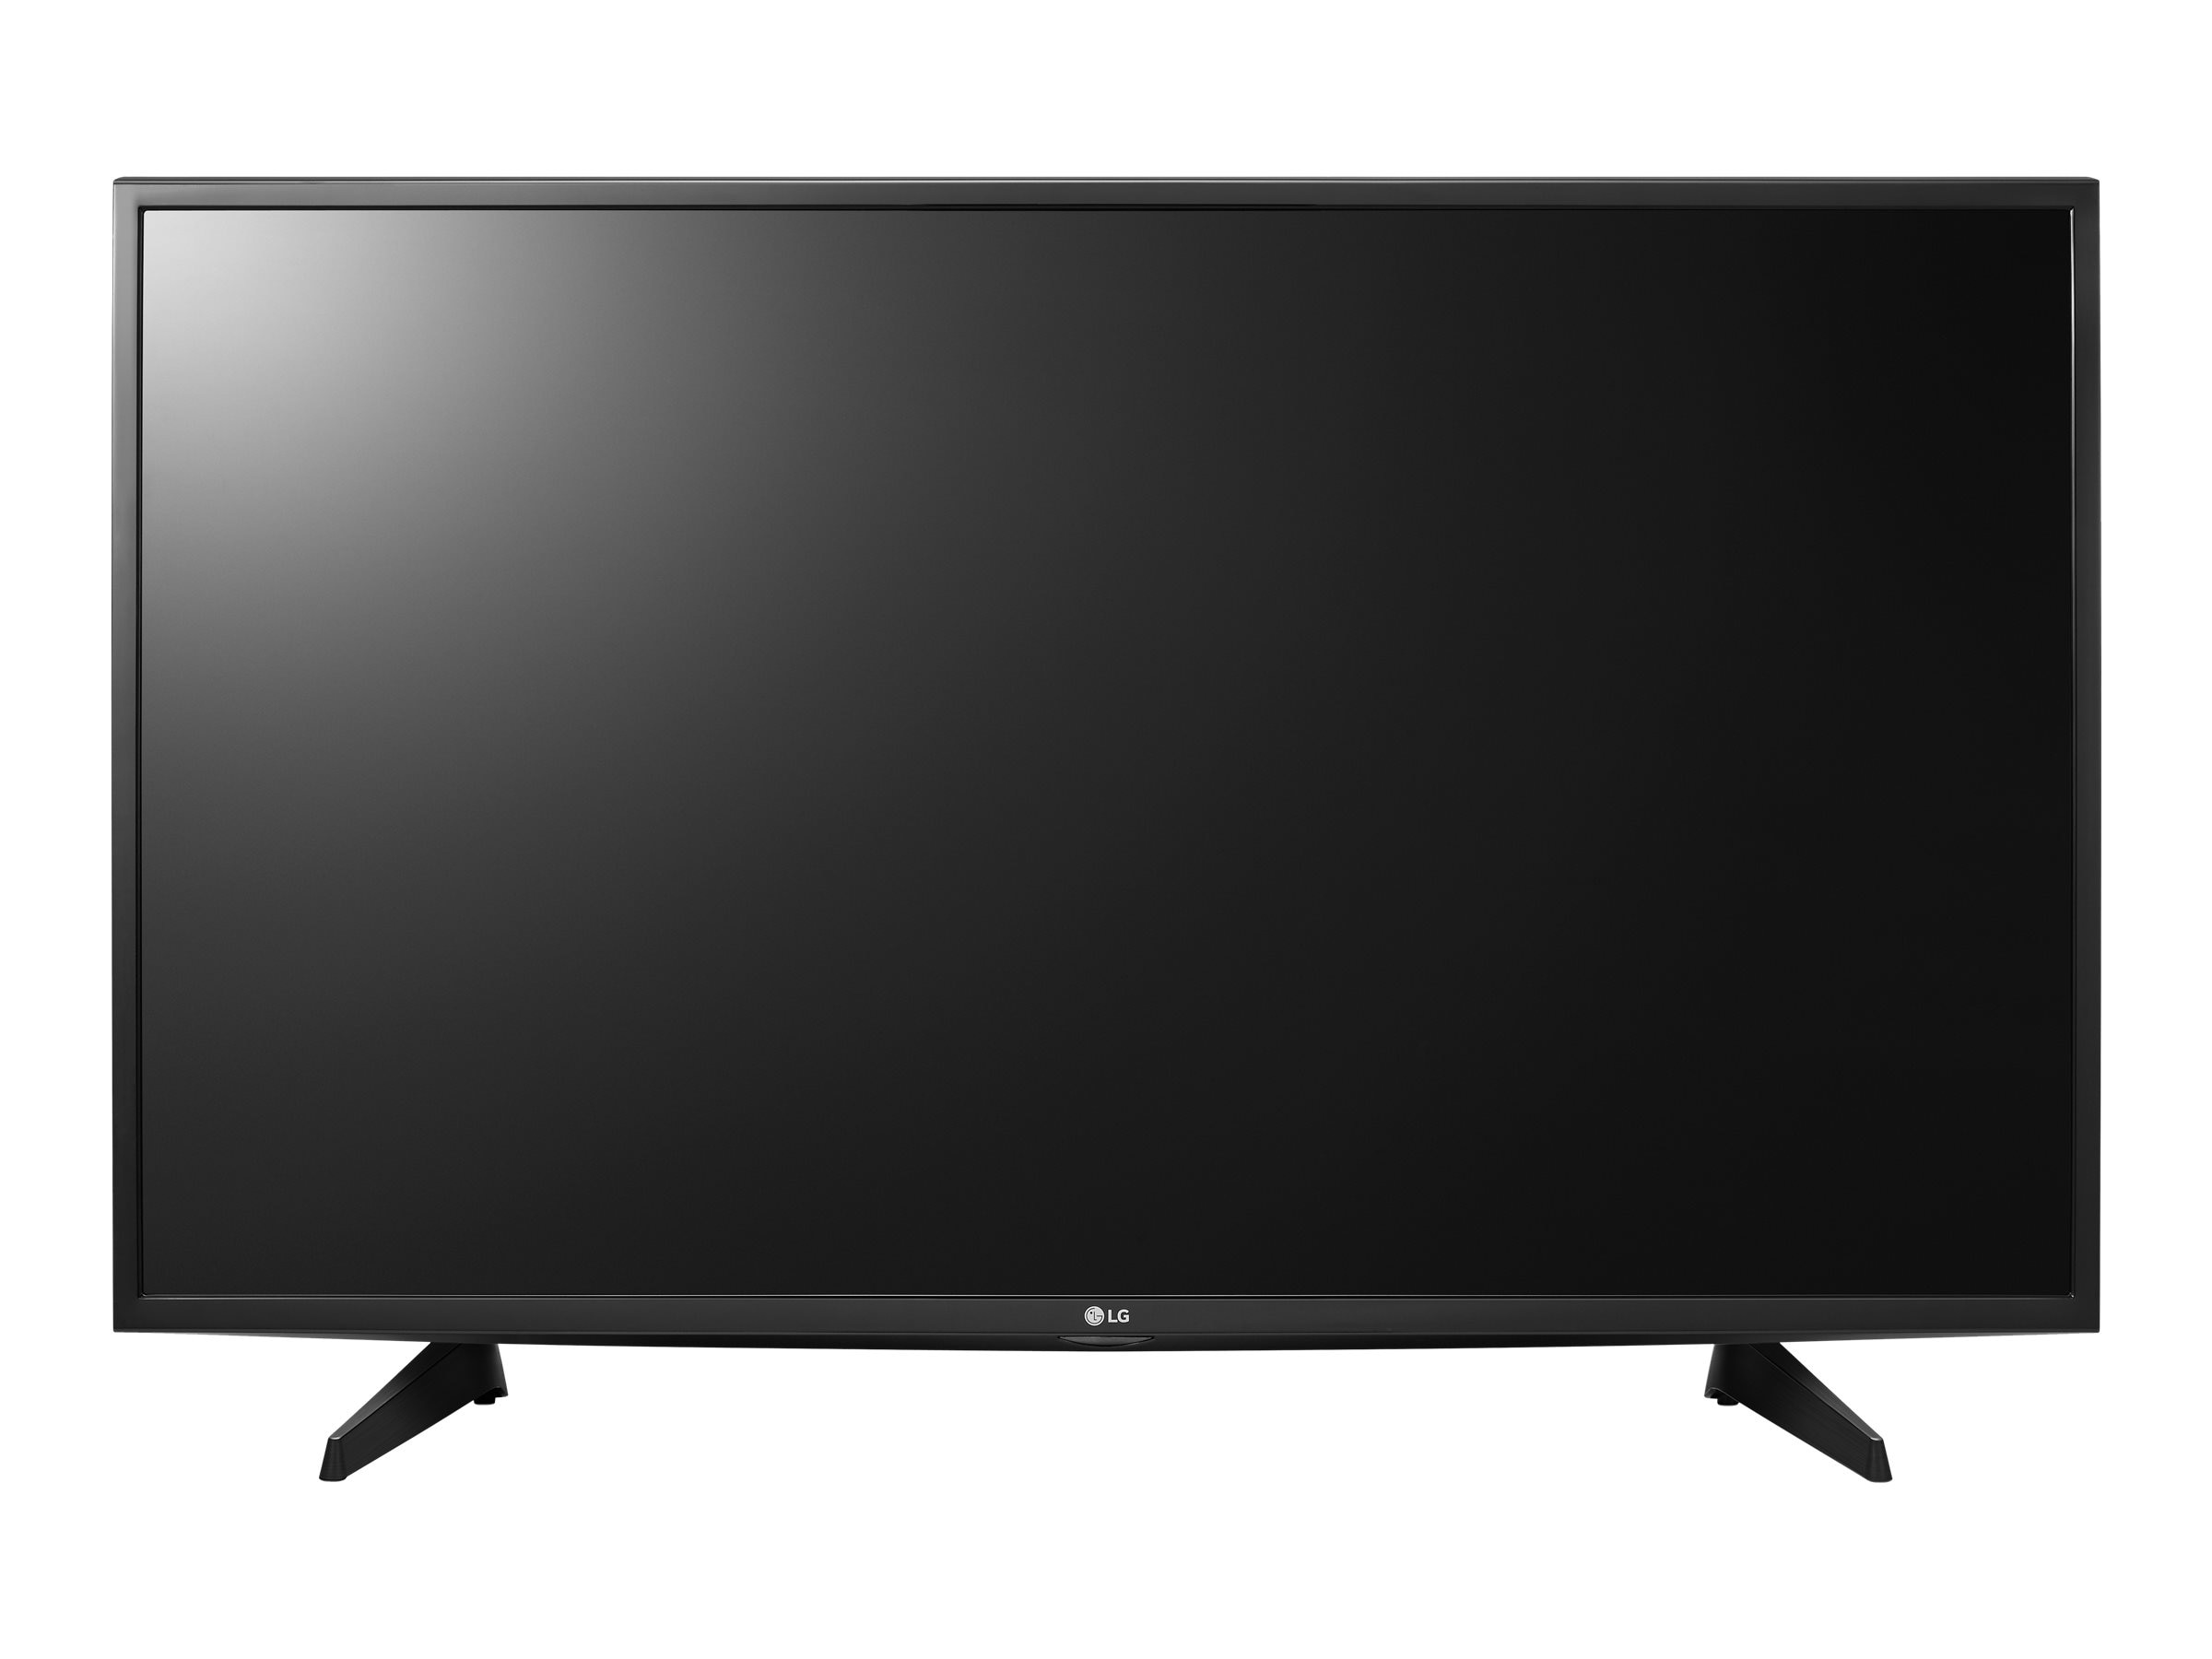 LG 49 LH5700 Full HD LED-LCD Smart TV, Black, 49LH5700, 31860062, Televisions - LED-LCD Consumer